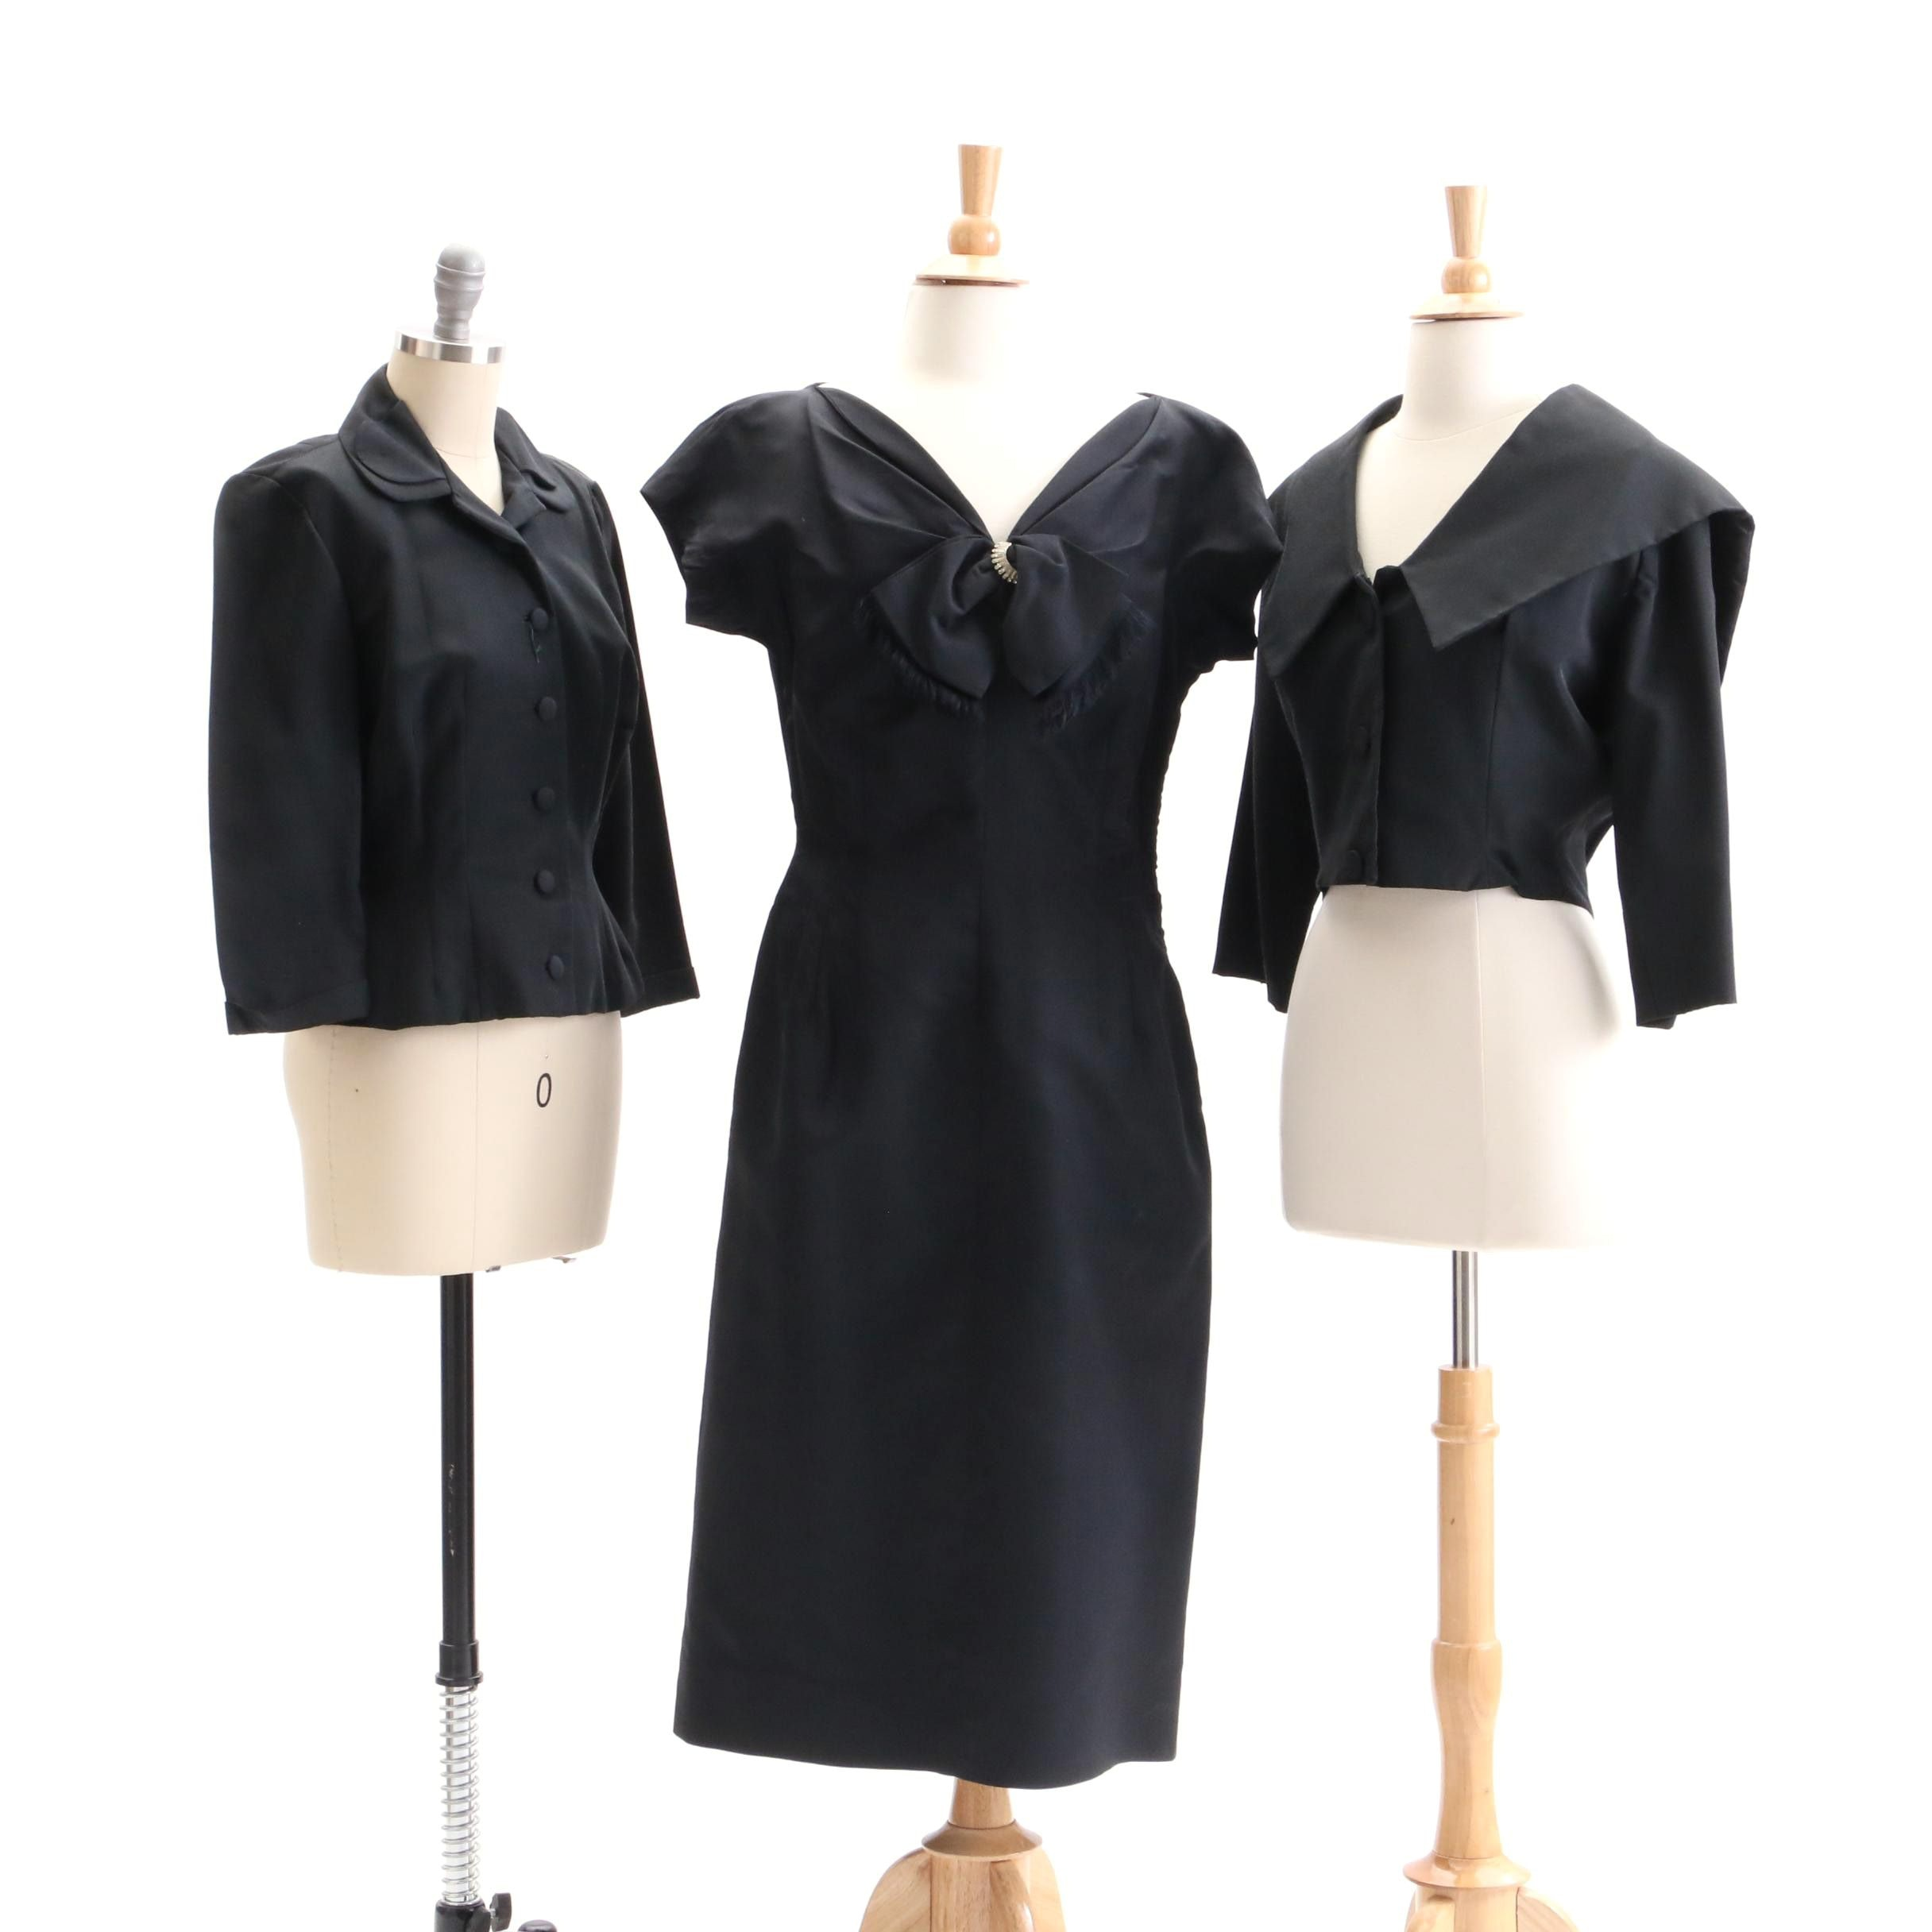 Circa 1960s Vintage Black Cocktail Dress and Jackets